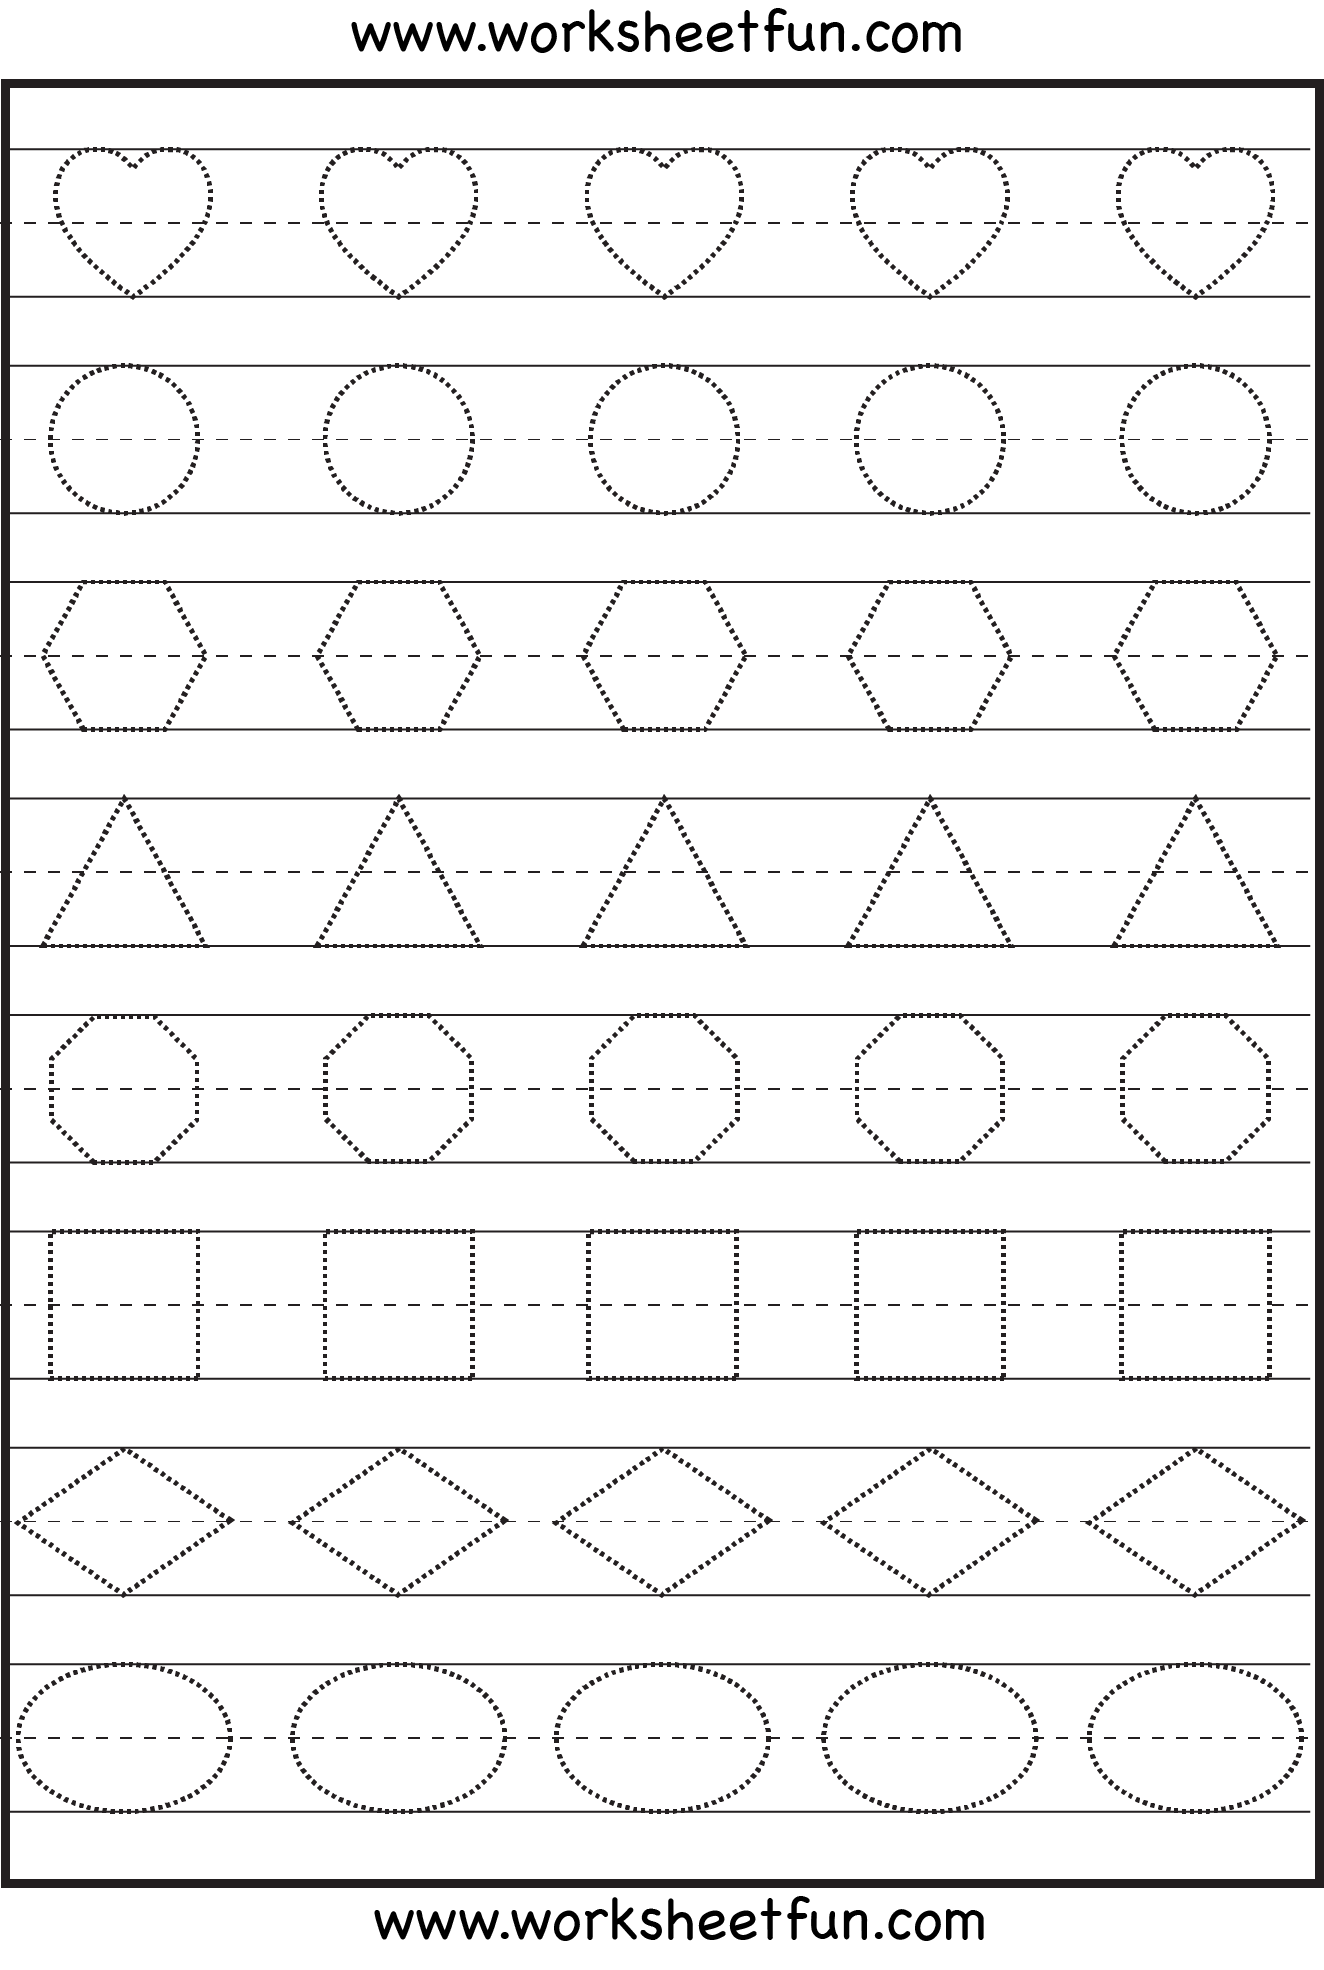 Worksheet Pattern Worksheets For Kindergarten Printable free printable pattern worksheets davezan 9 best images of for preschool free